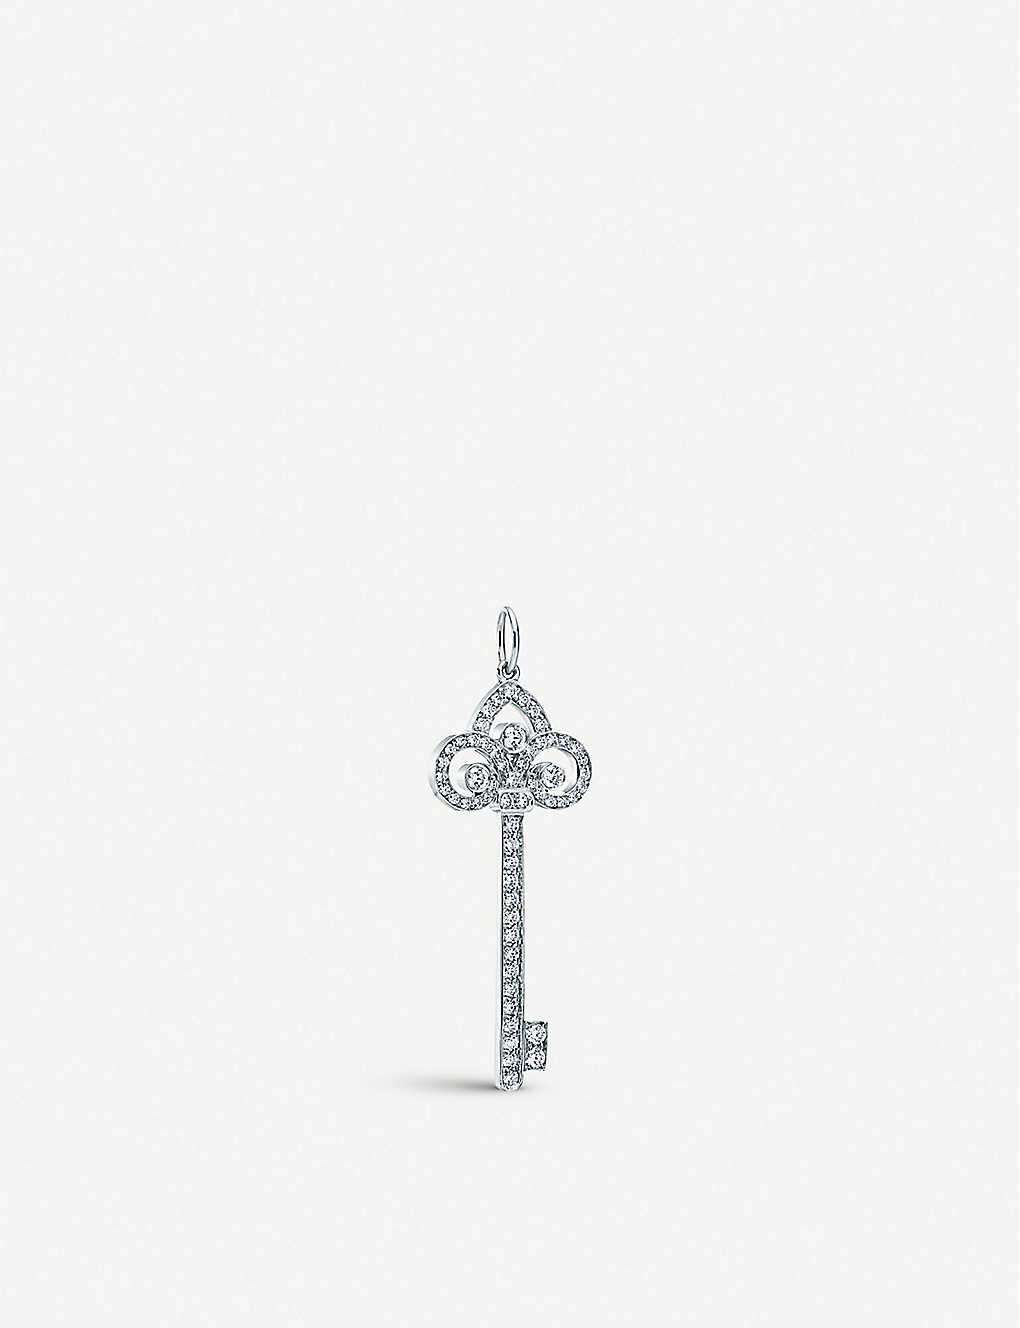 70ba99e4d TIFFANY & CO - Tiffany Keys fleur de lis key pendant in platinum ...